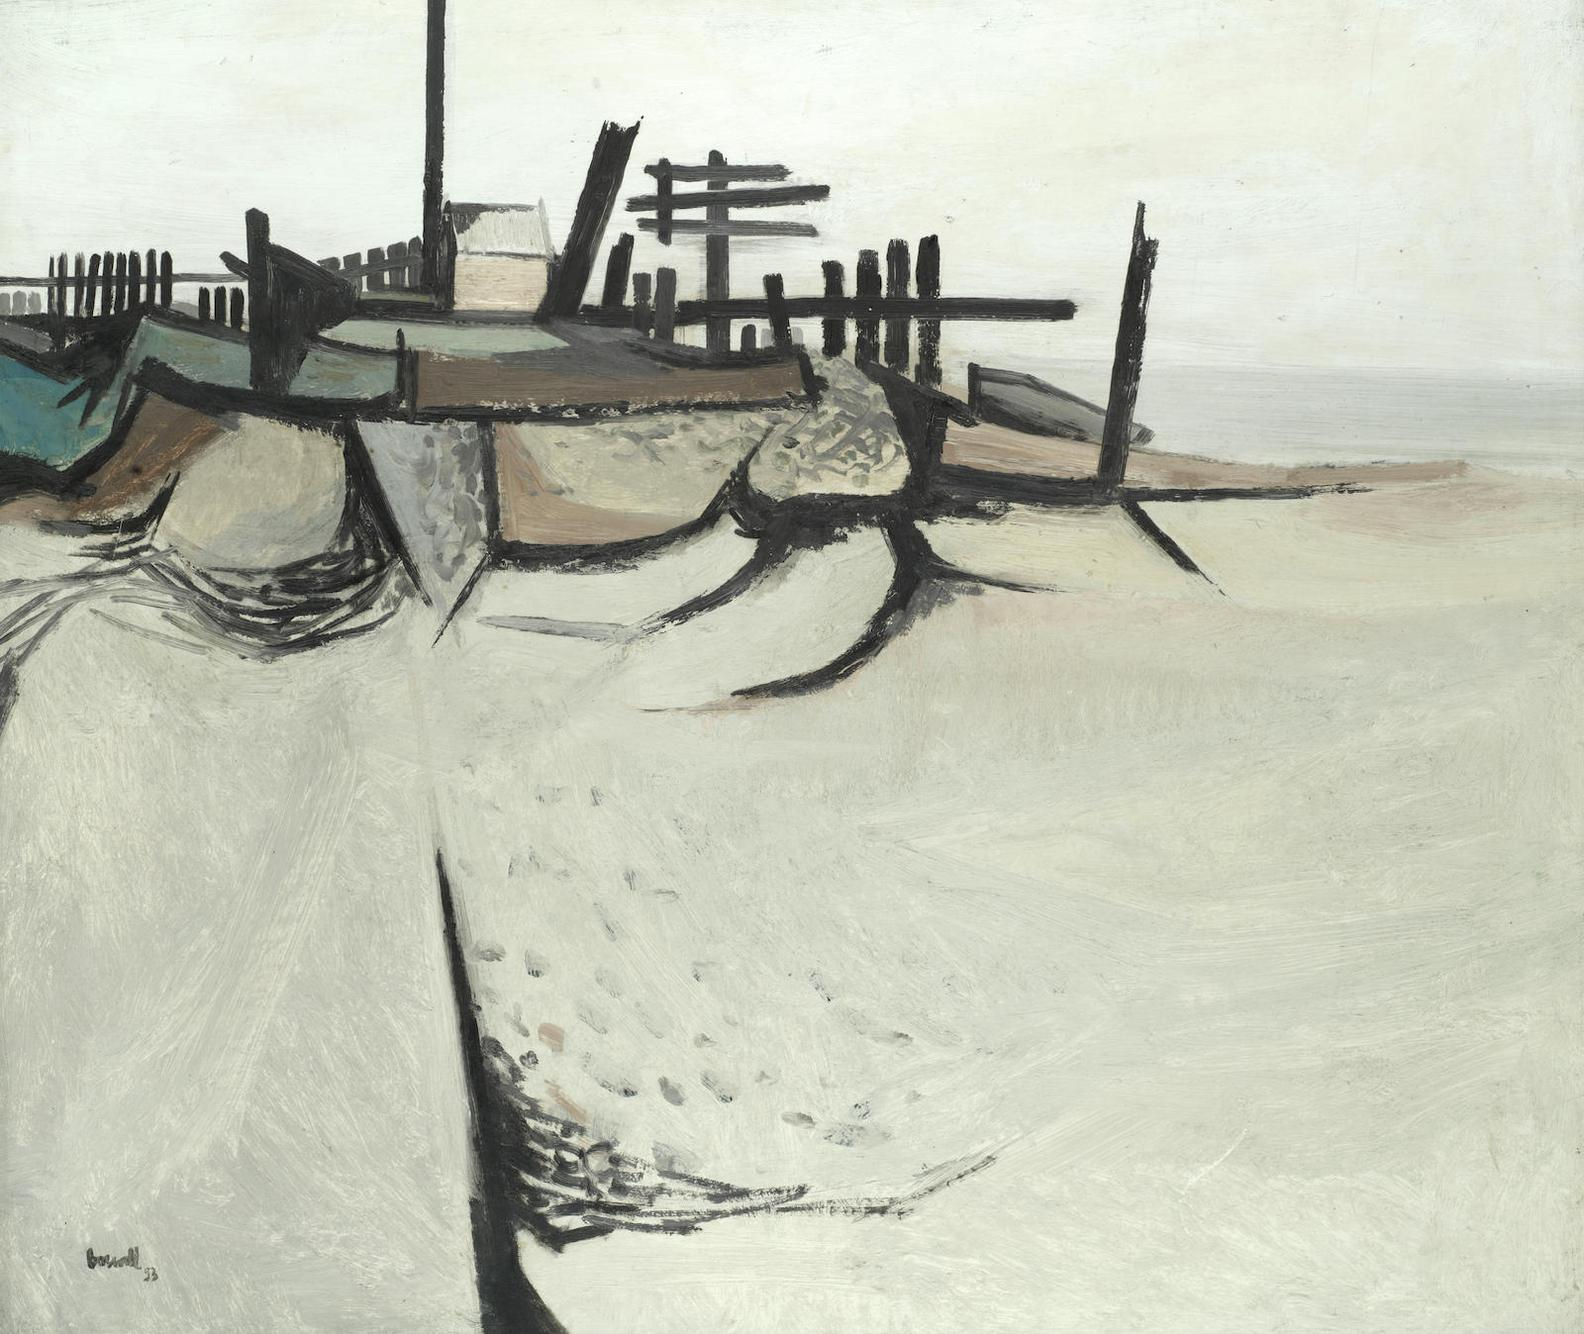 James Boswell - Foreshore-1953